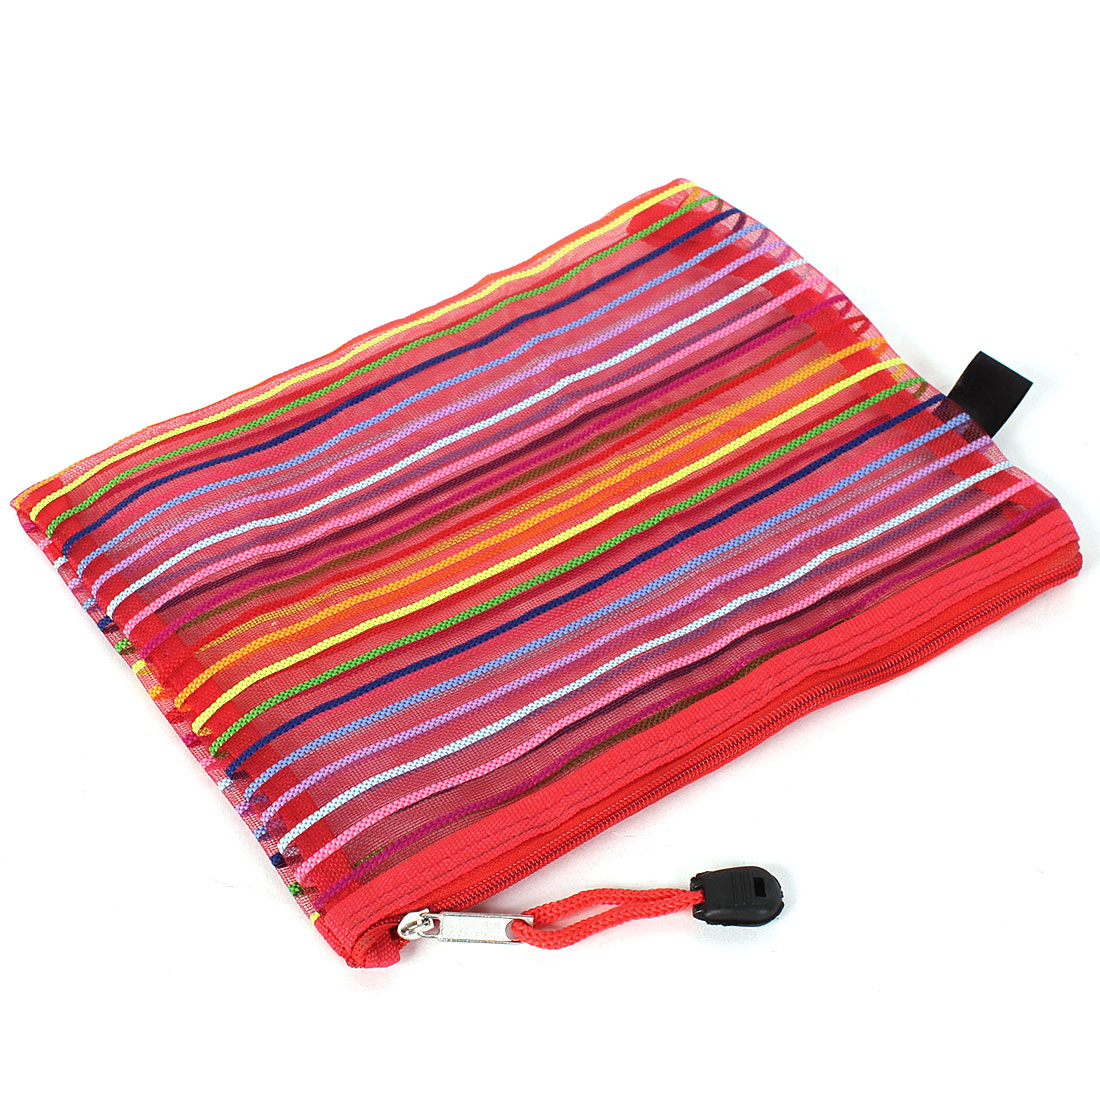 Red Meshy Style Multicolor Stripes Zippered A5 Paper Doucument File Pen Bag Folder Holder Organizer Pouch